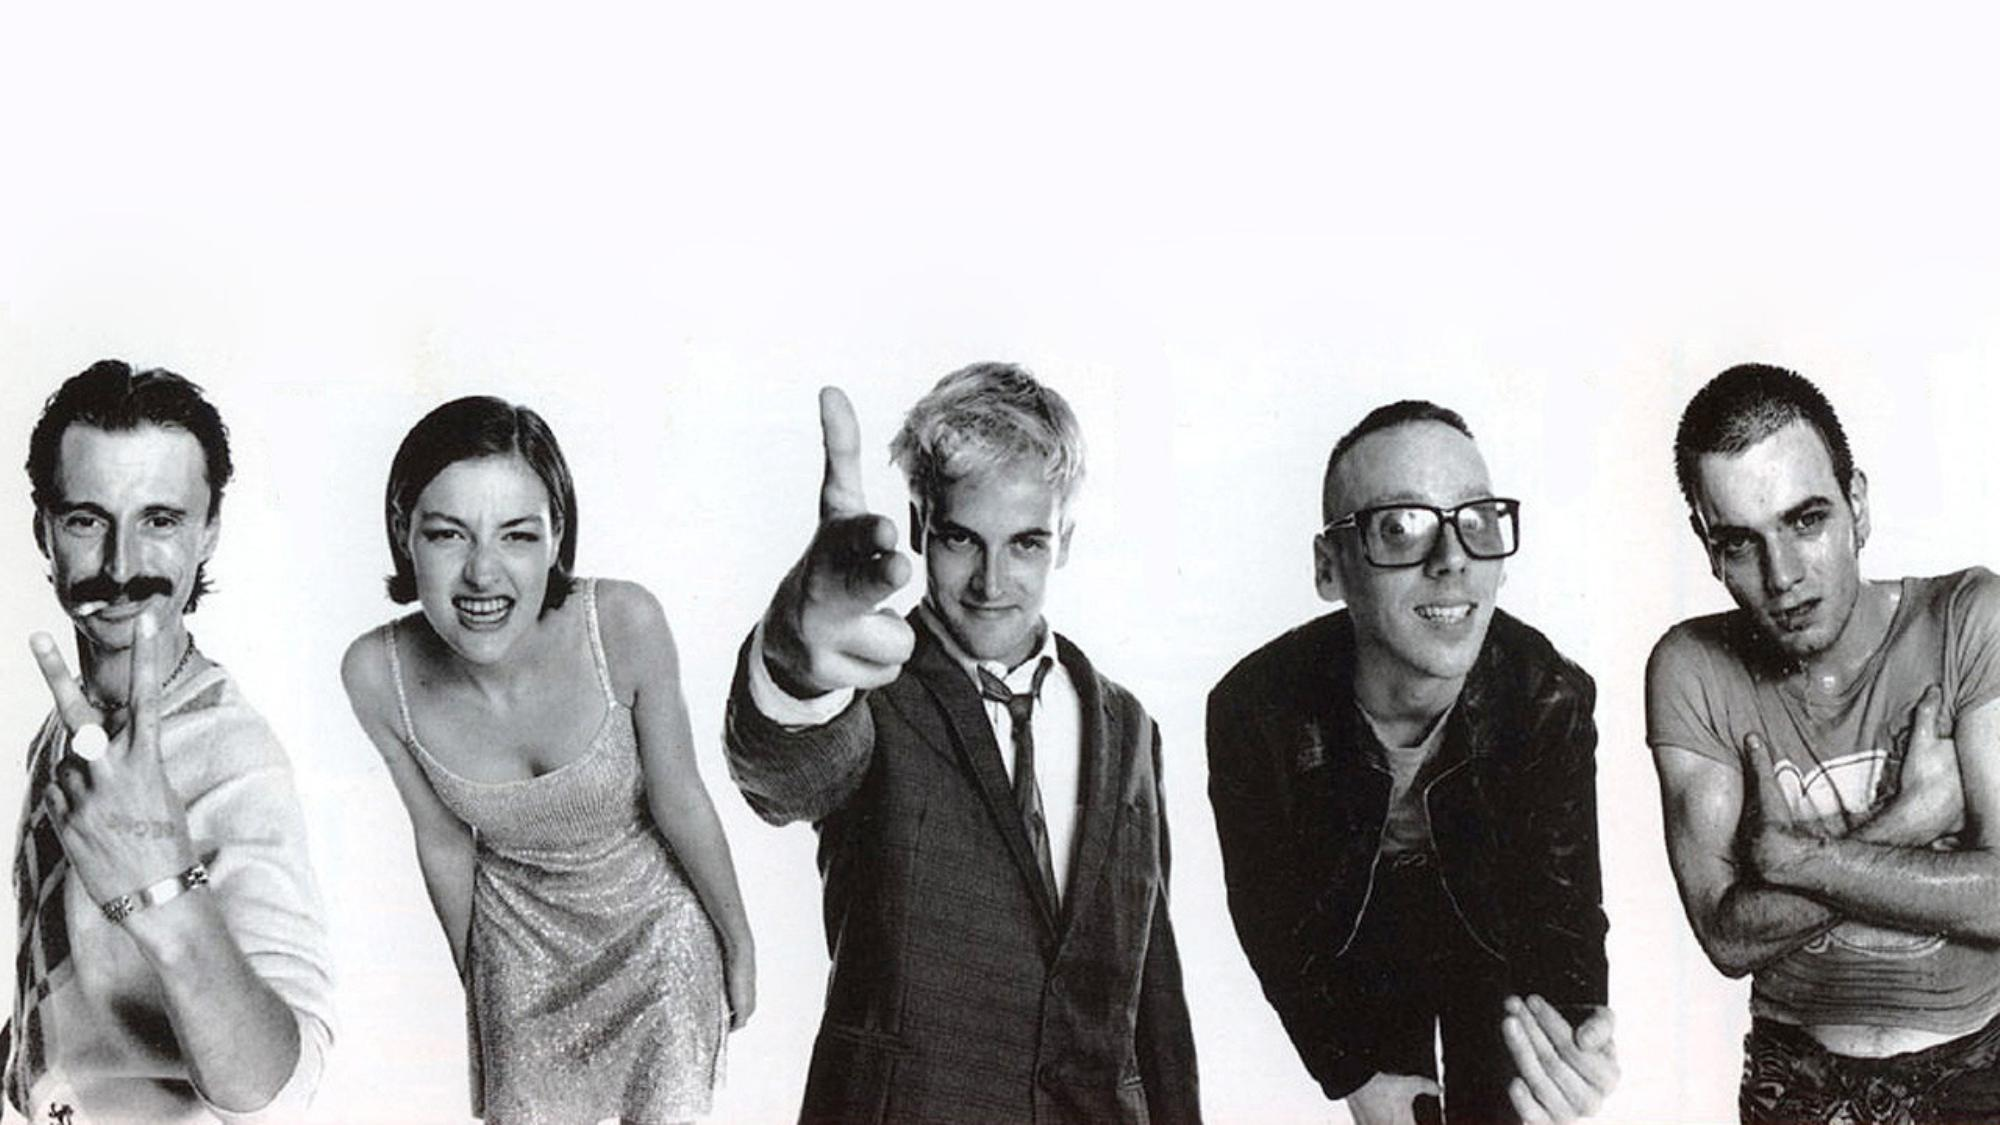 trainspotting-where-are-they-now-1441883862